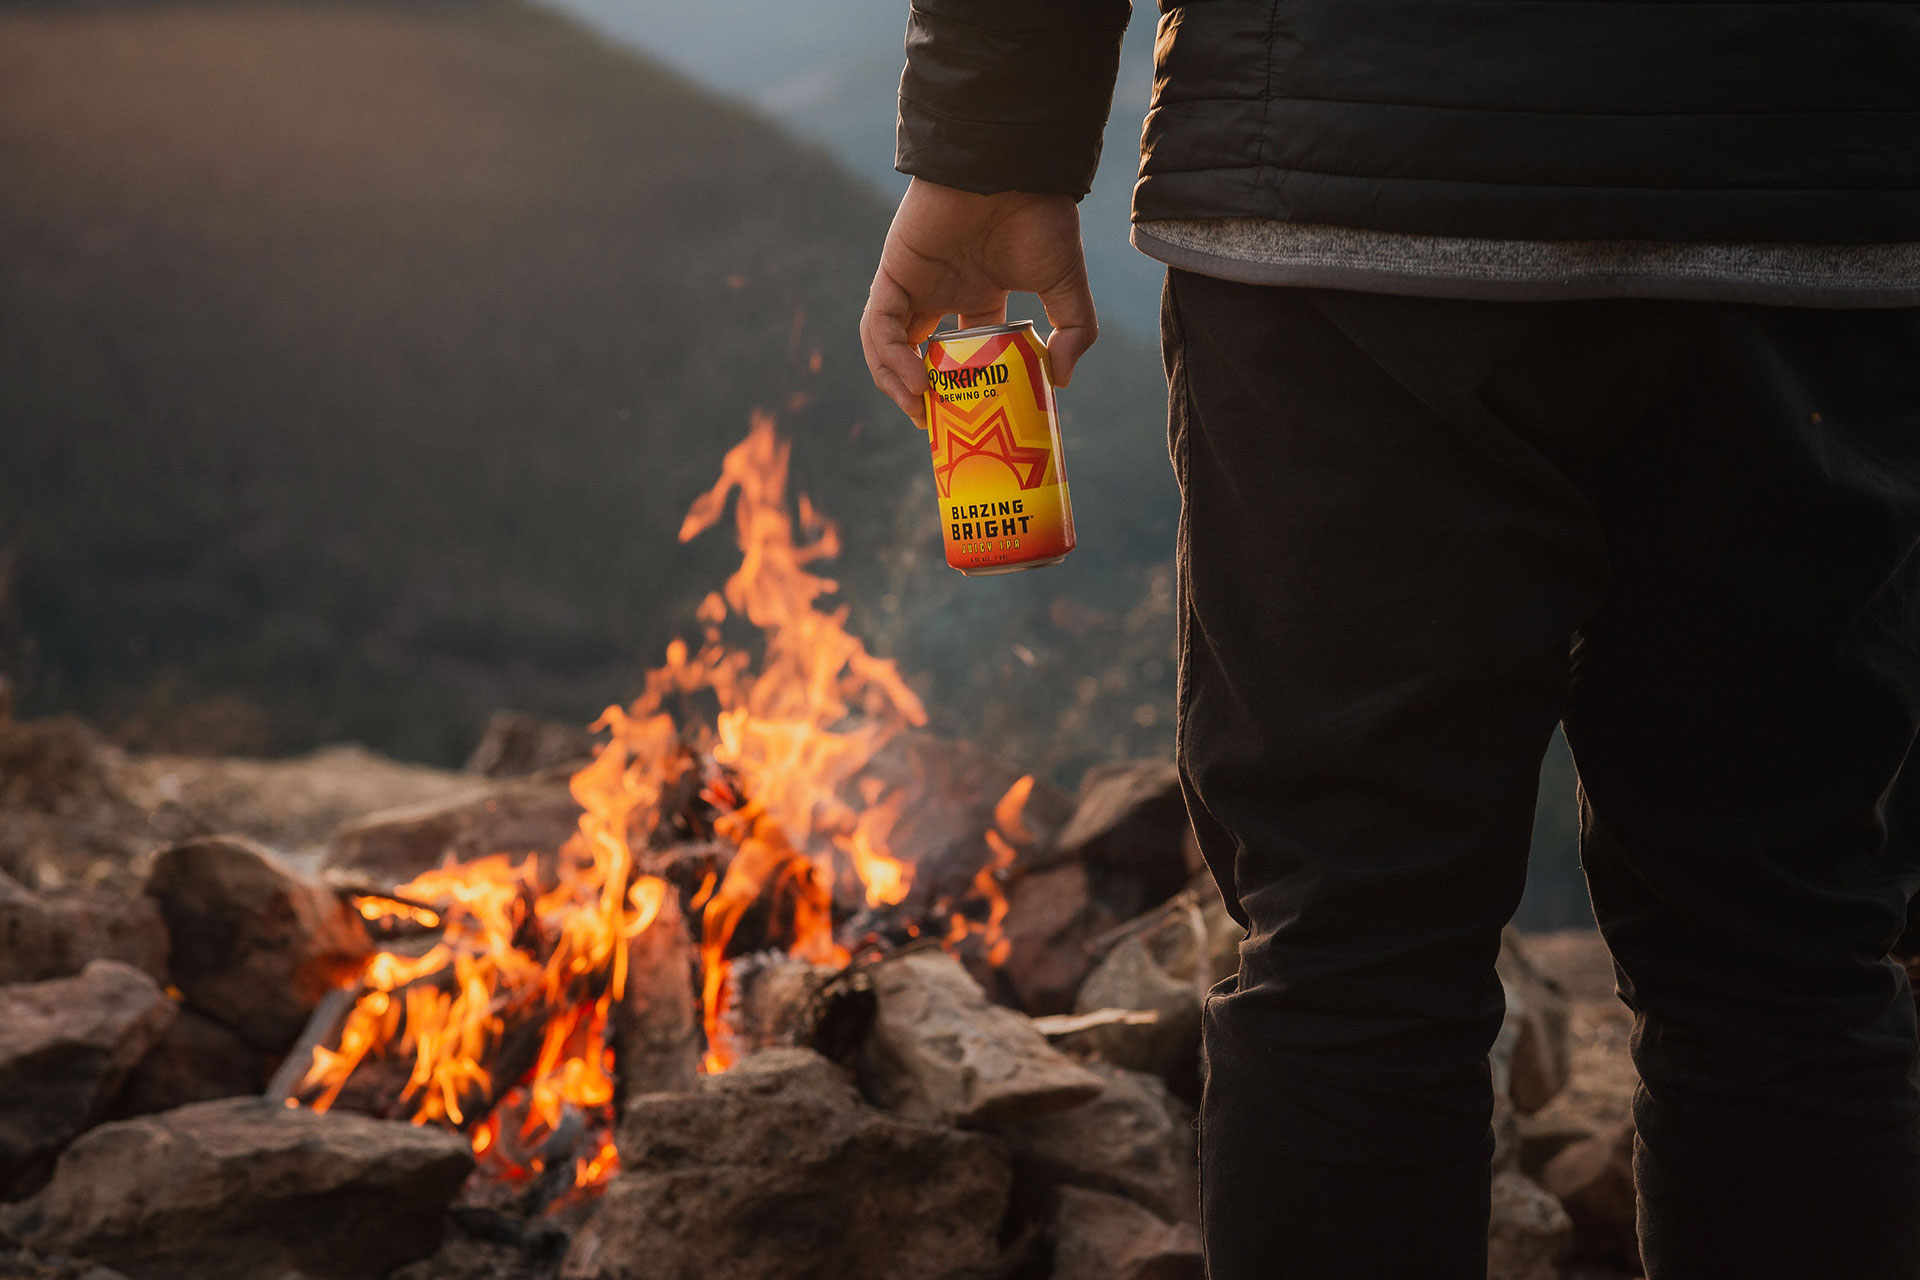 Gentlemen from behind holding a Blazing Bright can with a campfire in the background